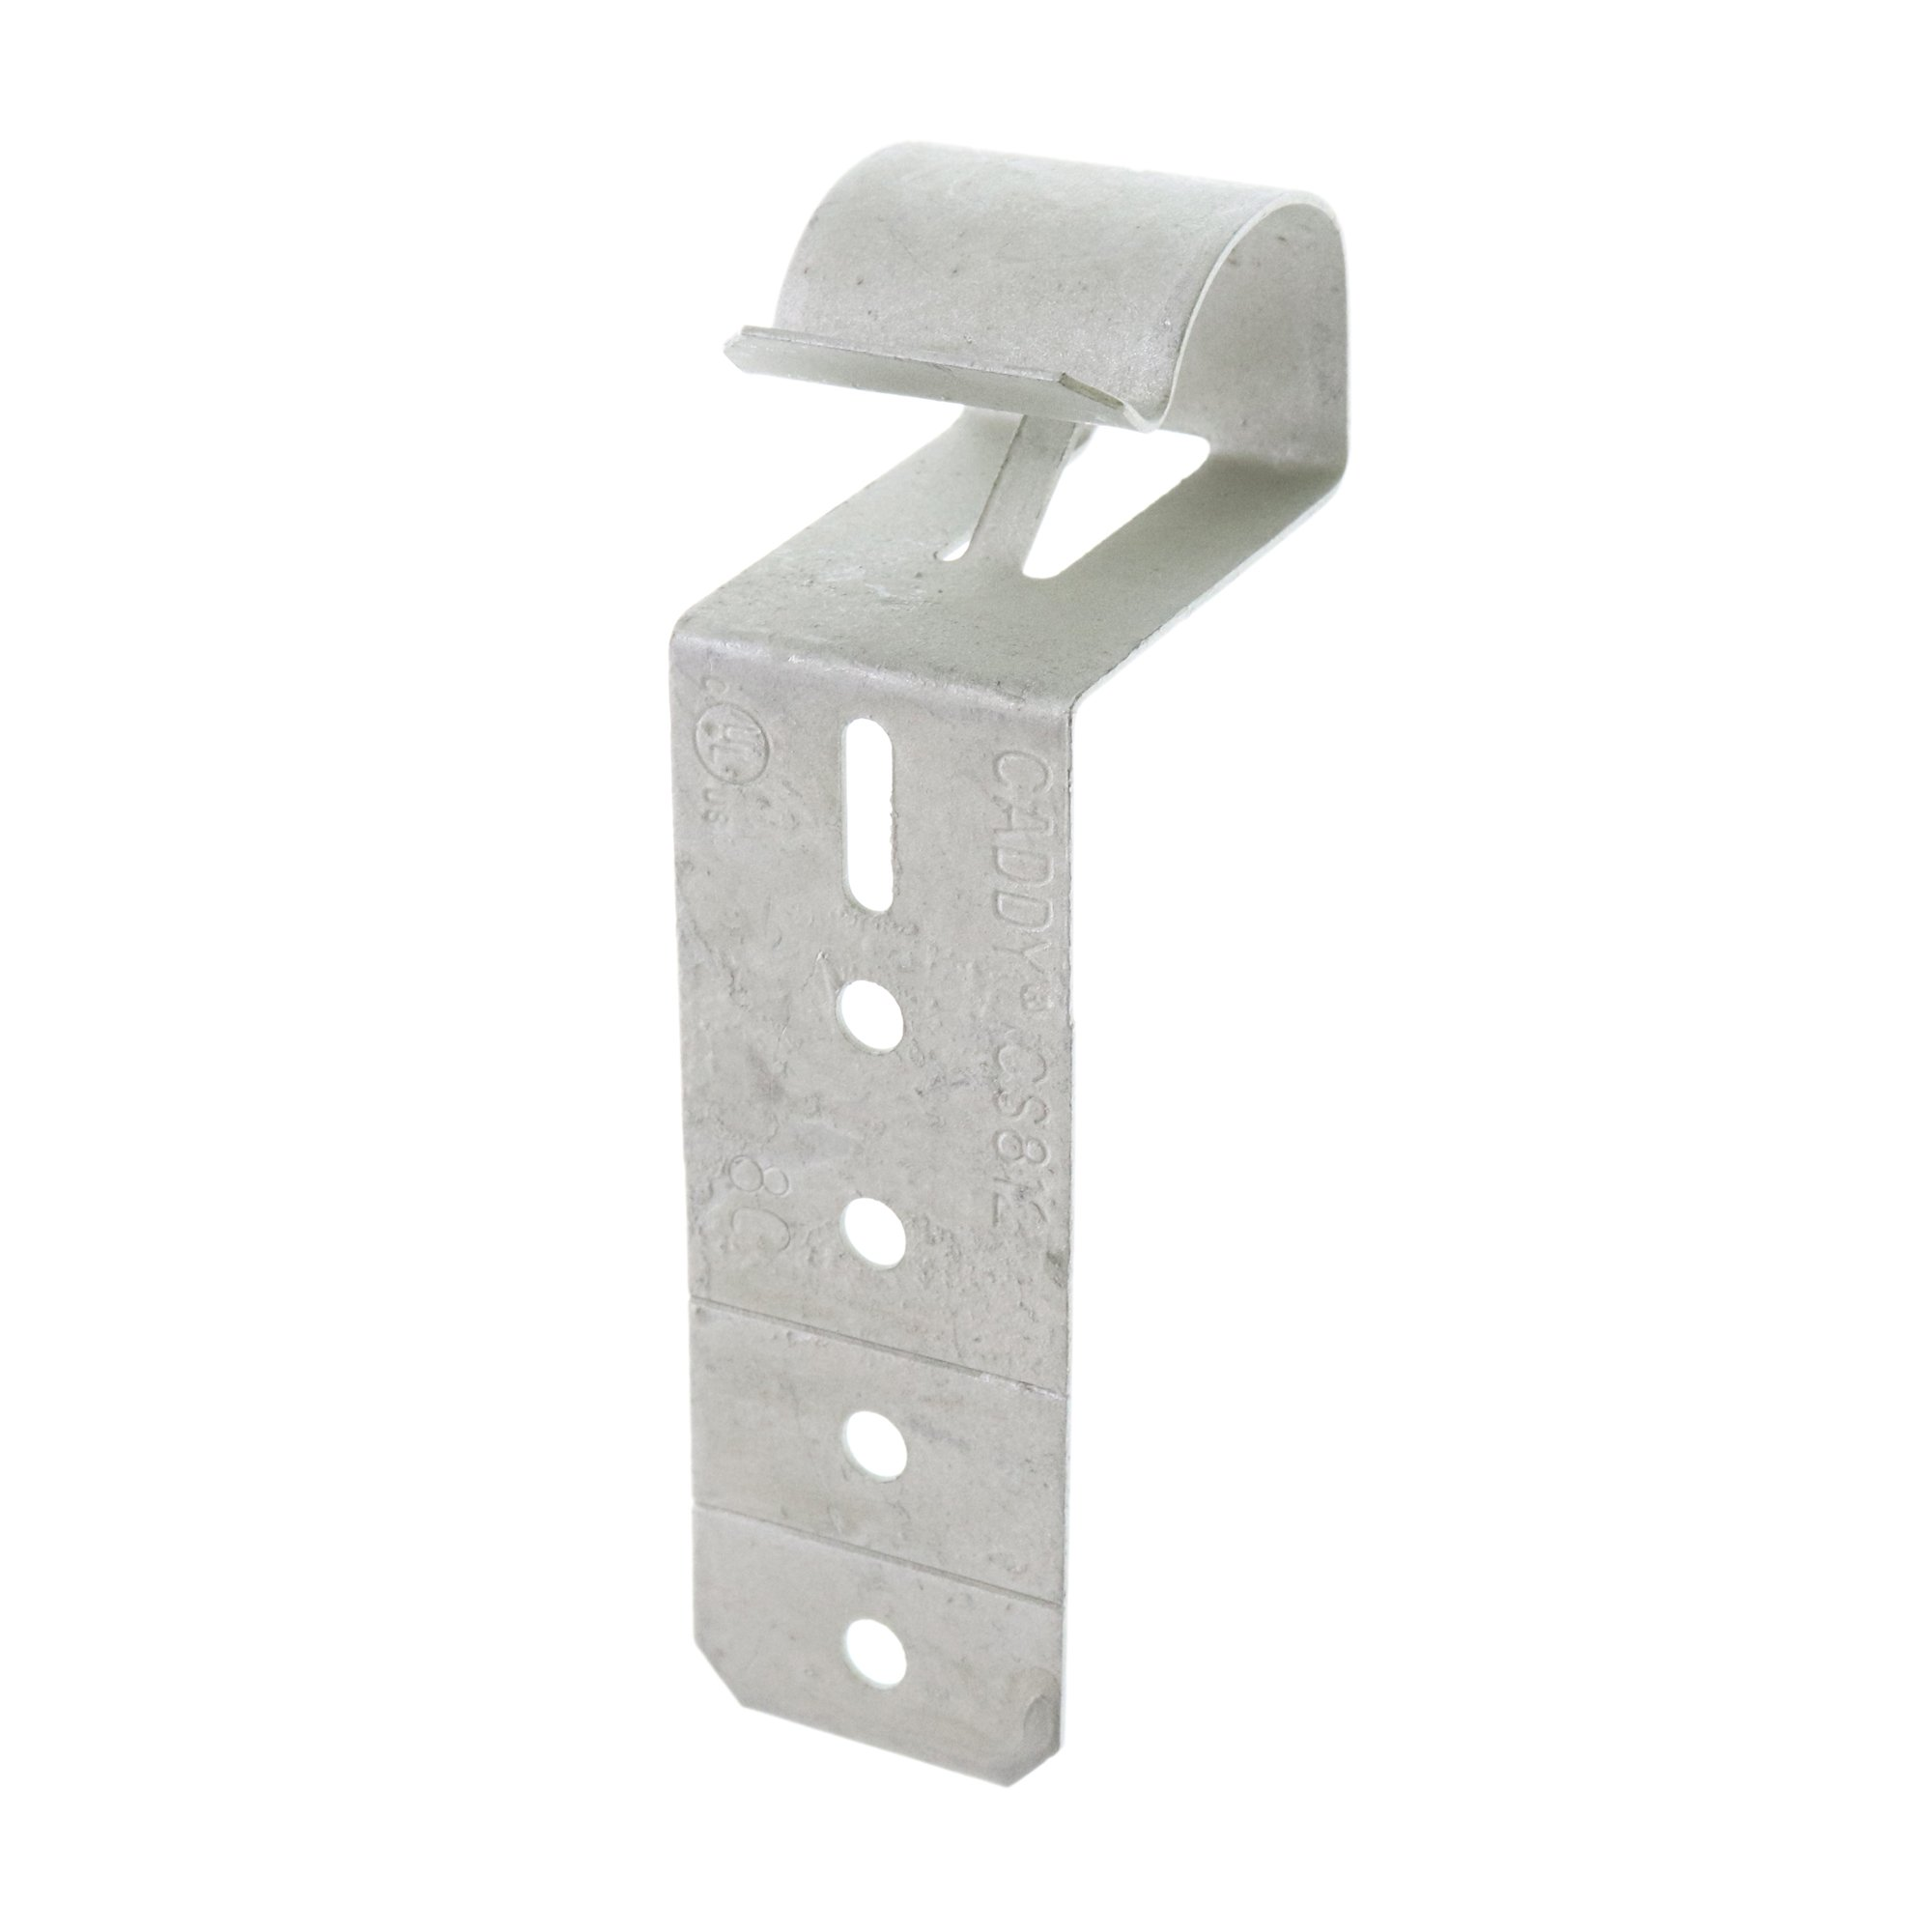 Caddy Erico CS812 Screw-On Cable or Conduit to Stud Support Clip, (100-Pack)